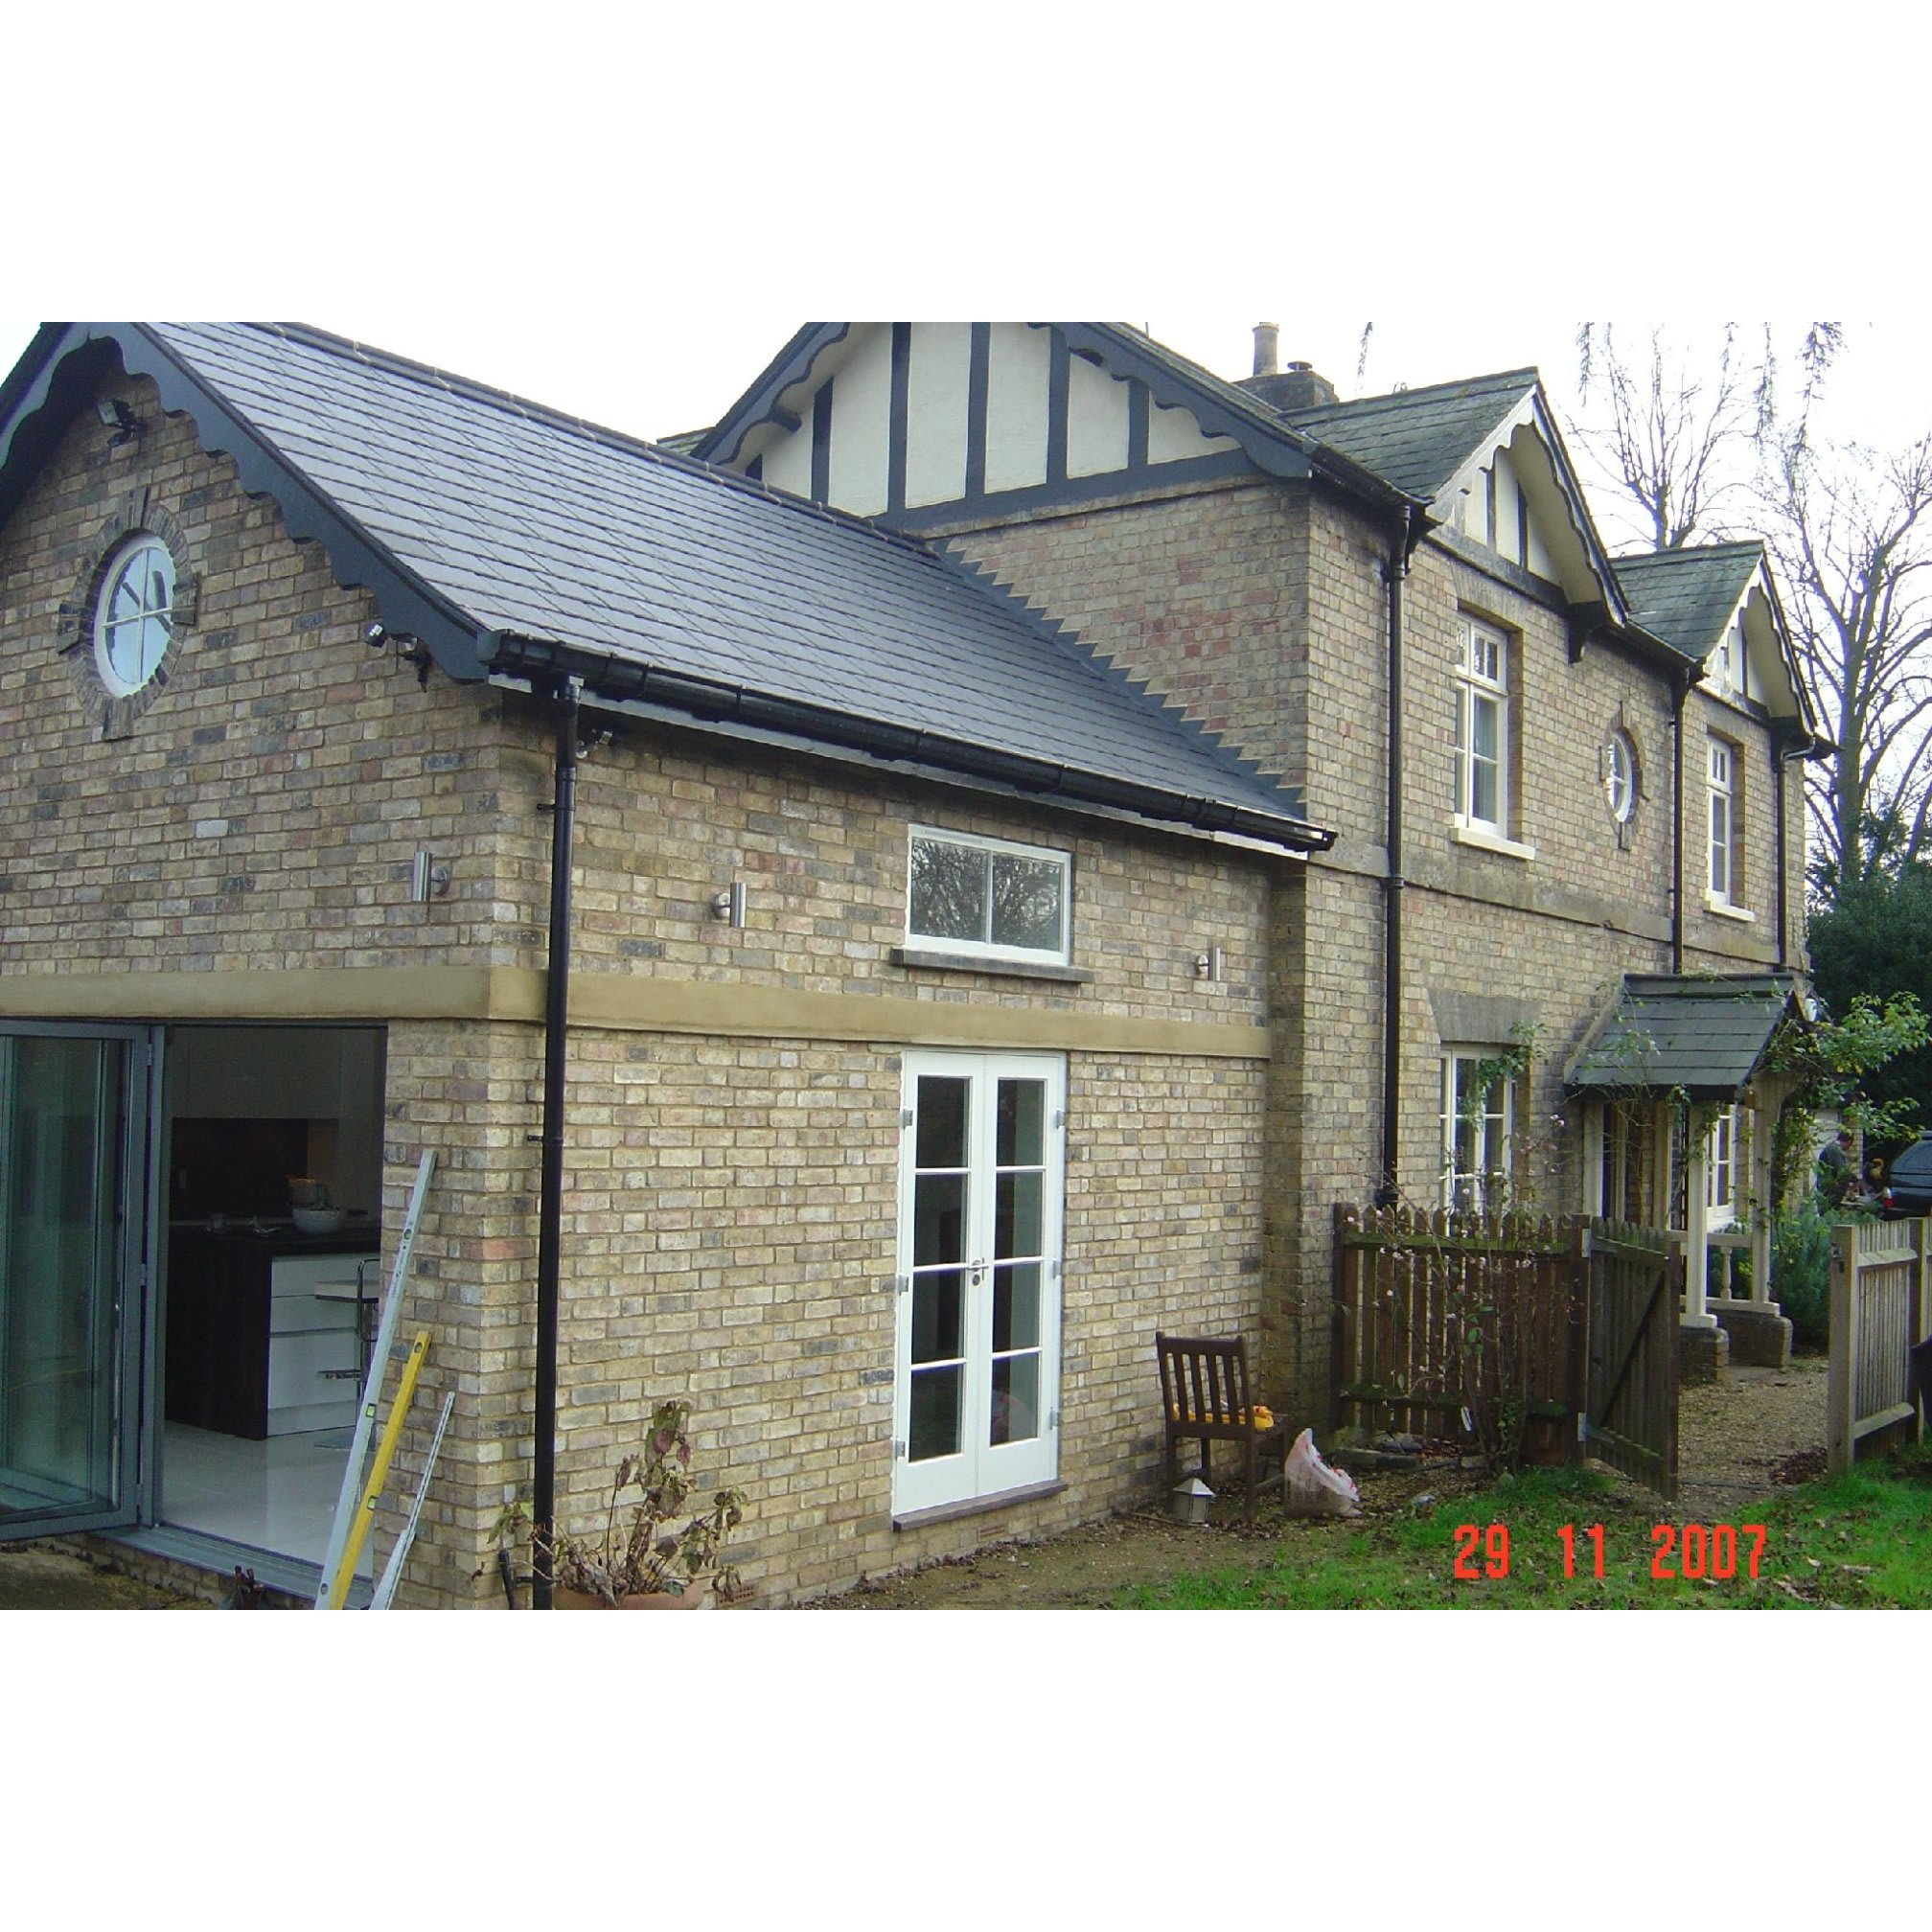 Capseal Construction & Roofing - Stevenage, Hertfordshire SG1 3RY - 07870 653886 | ShowMeLocal.com